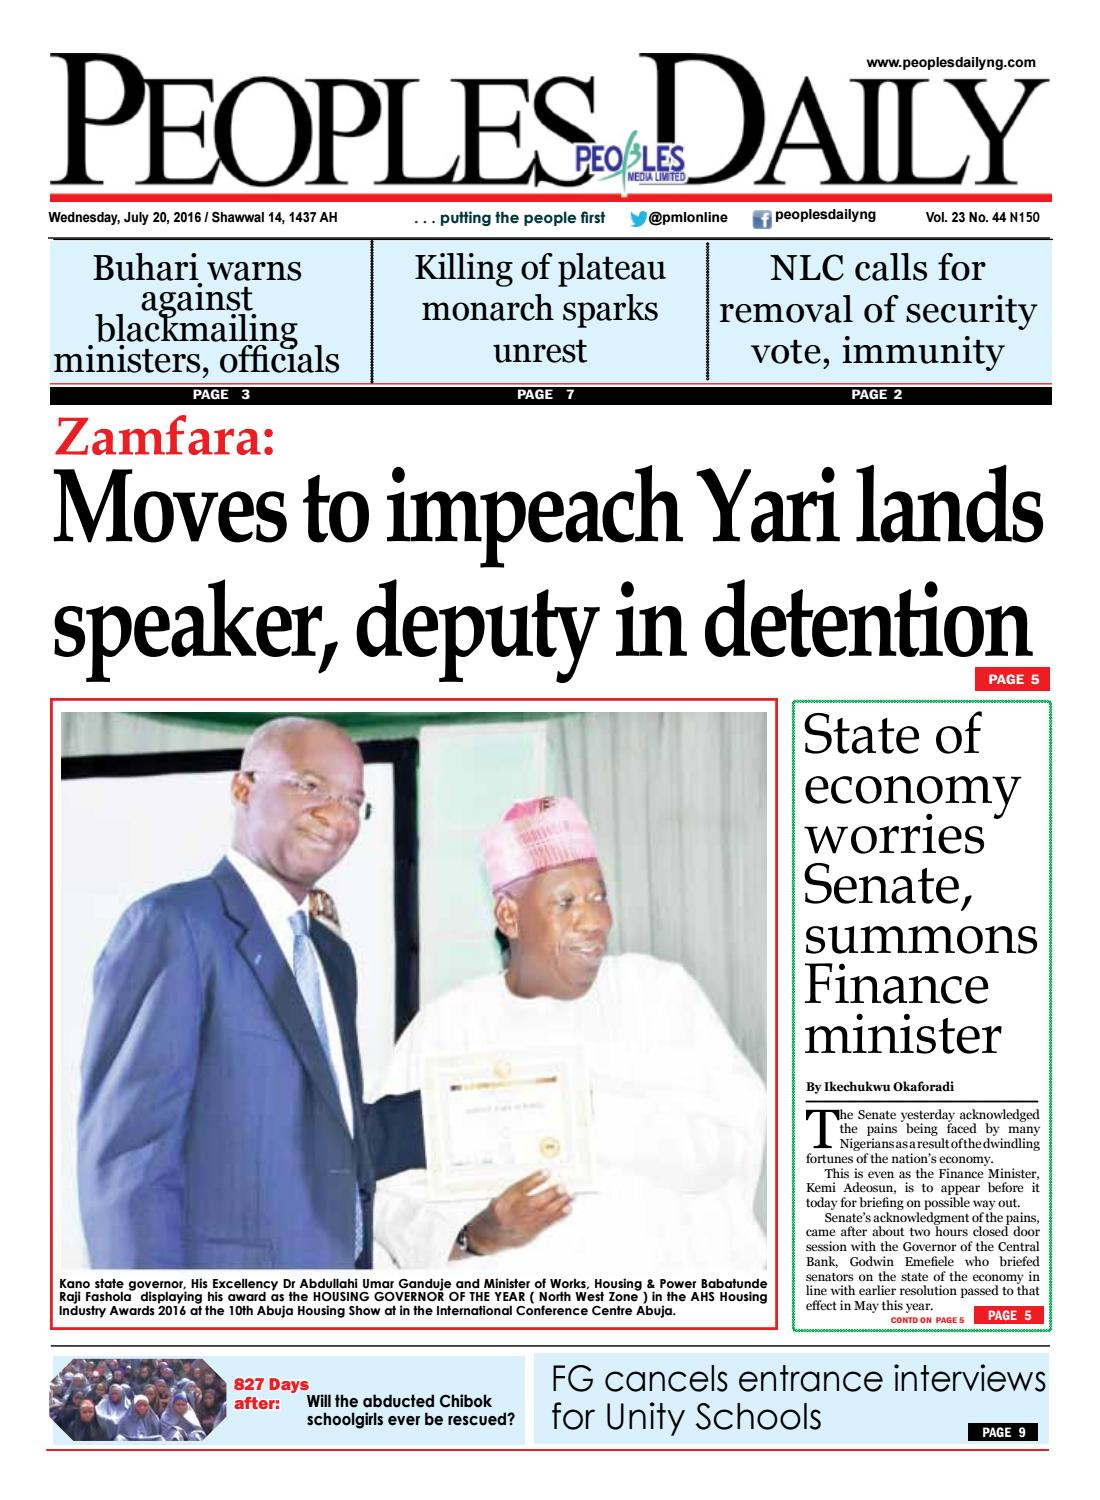 PEOPLES DAILY, WEDNESDAY, JULY 20, 2016  EDITION by Peoples